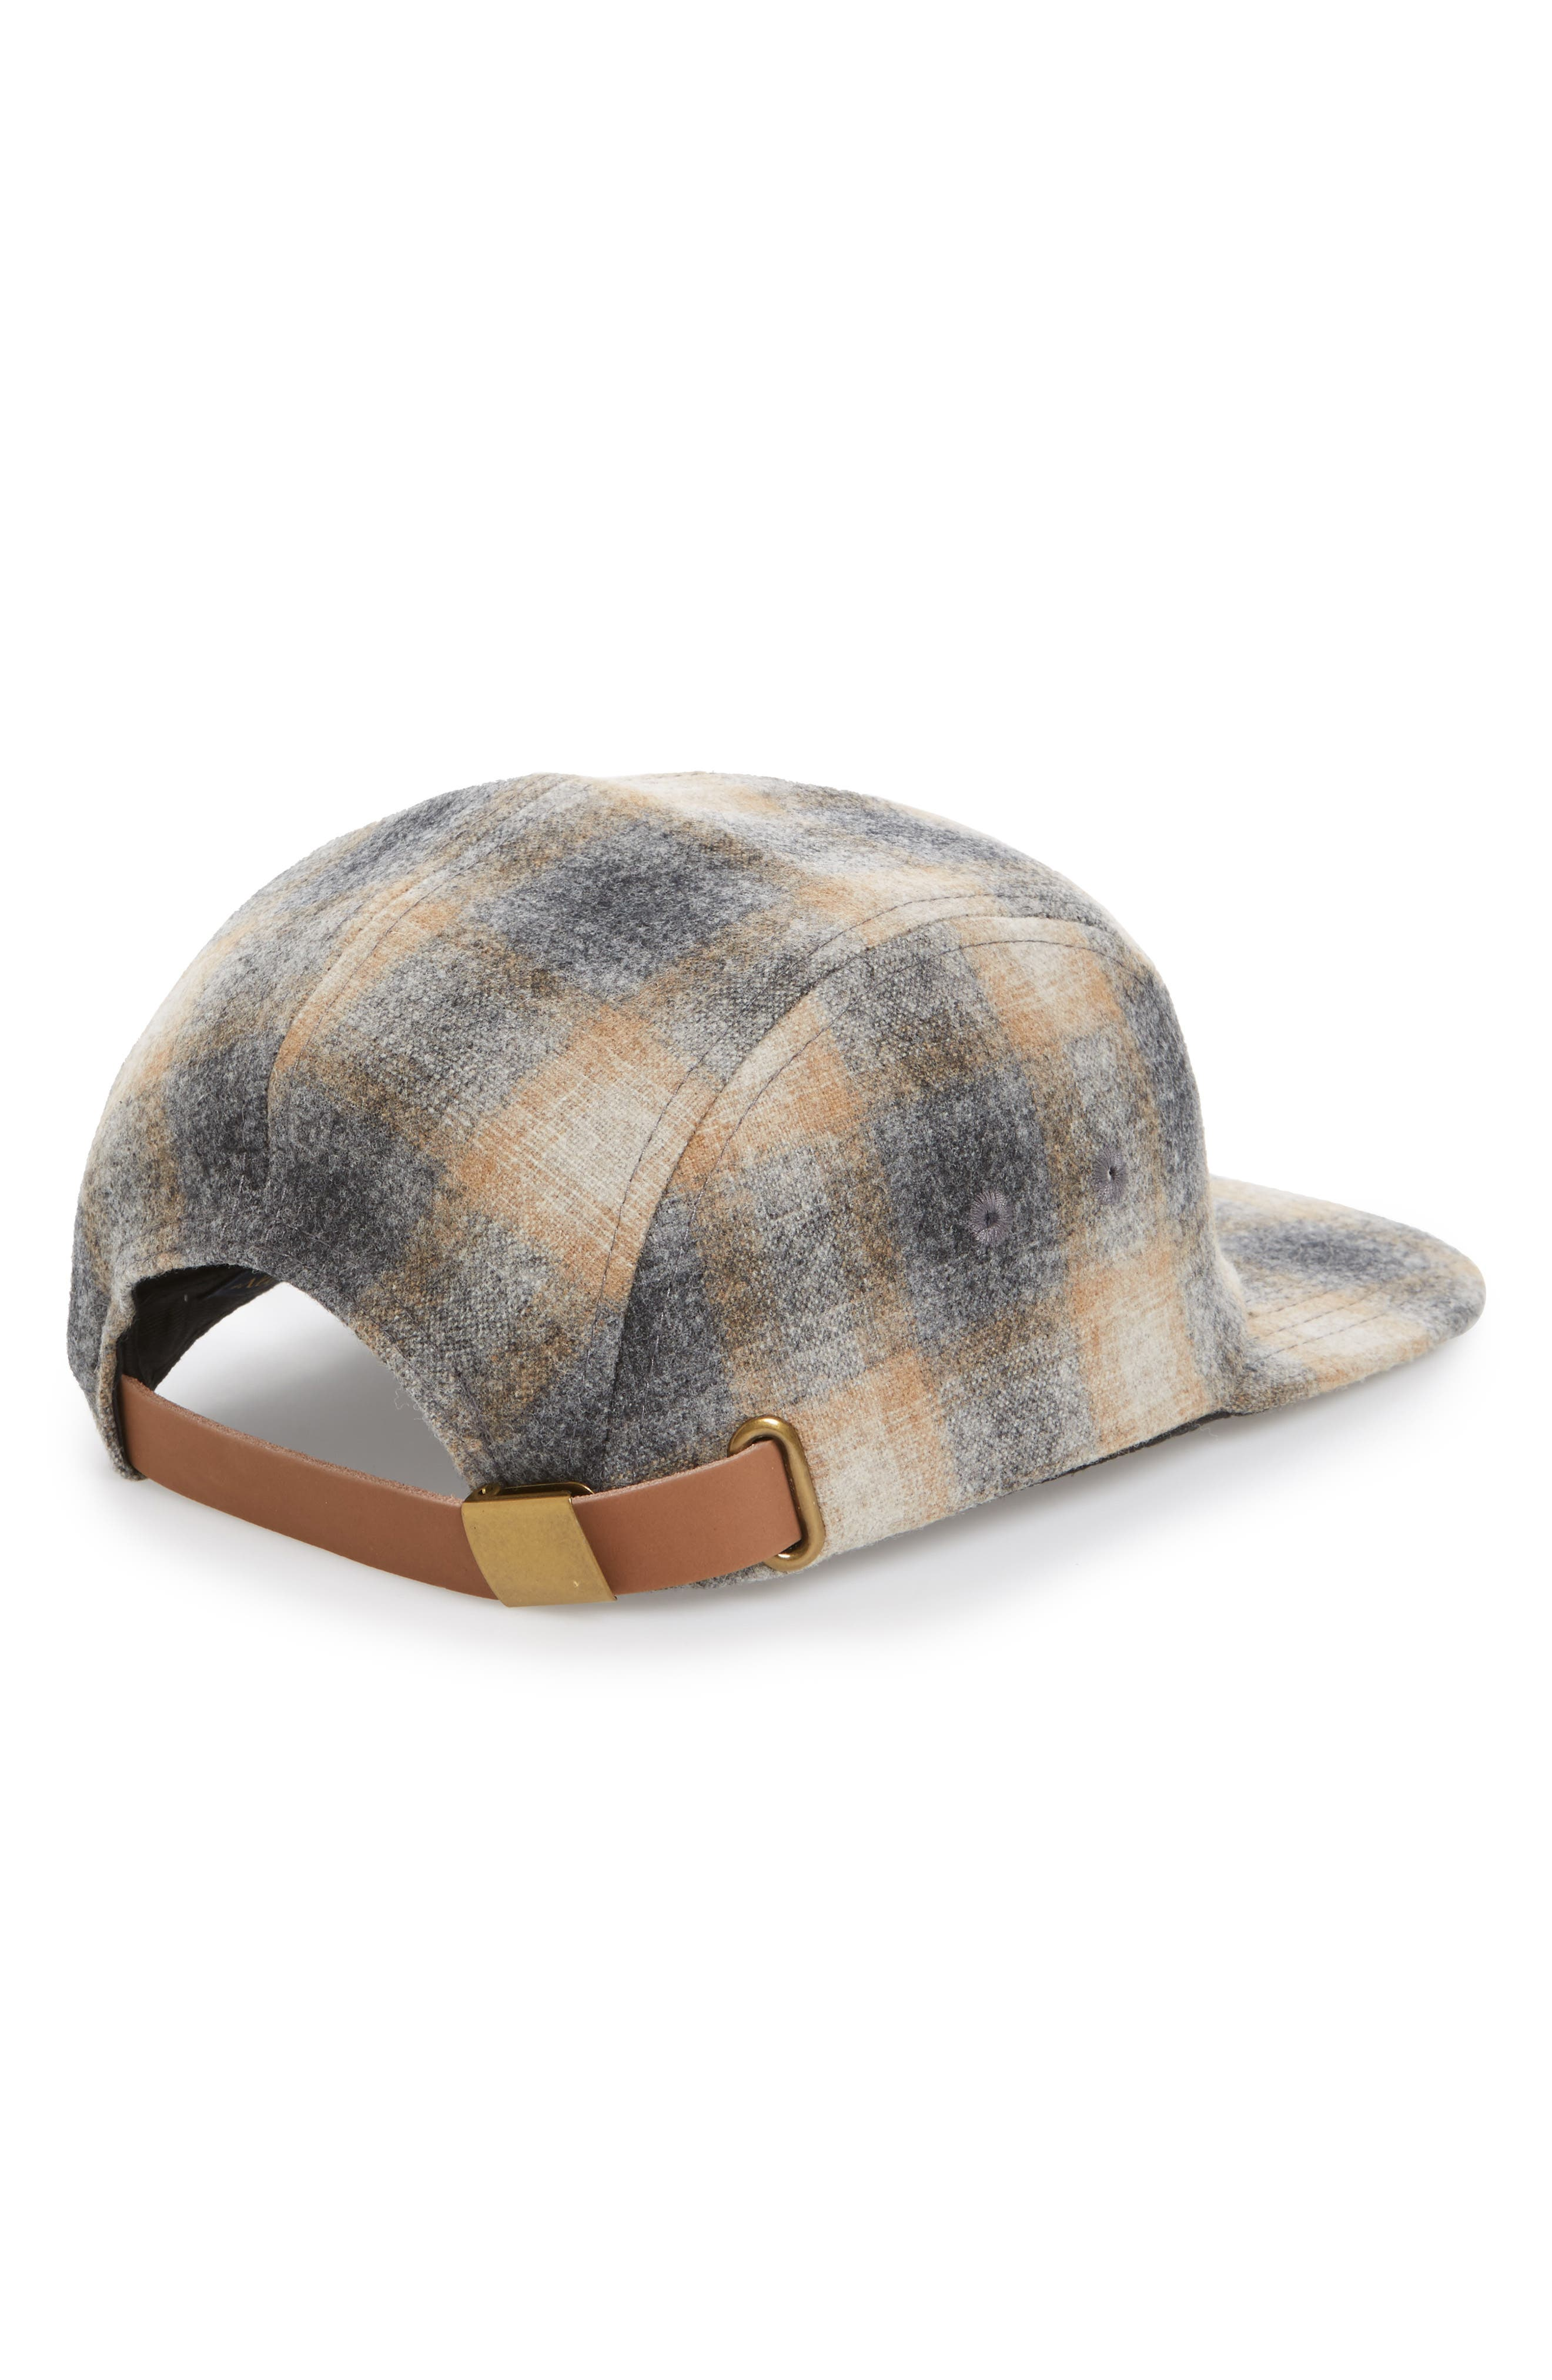 Five-Panel Camp Hat,                             Alternate thumbnail 2, color,                             Oxford Grey/ Tan Ombre